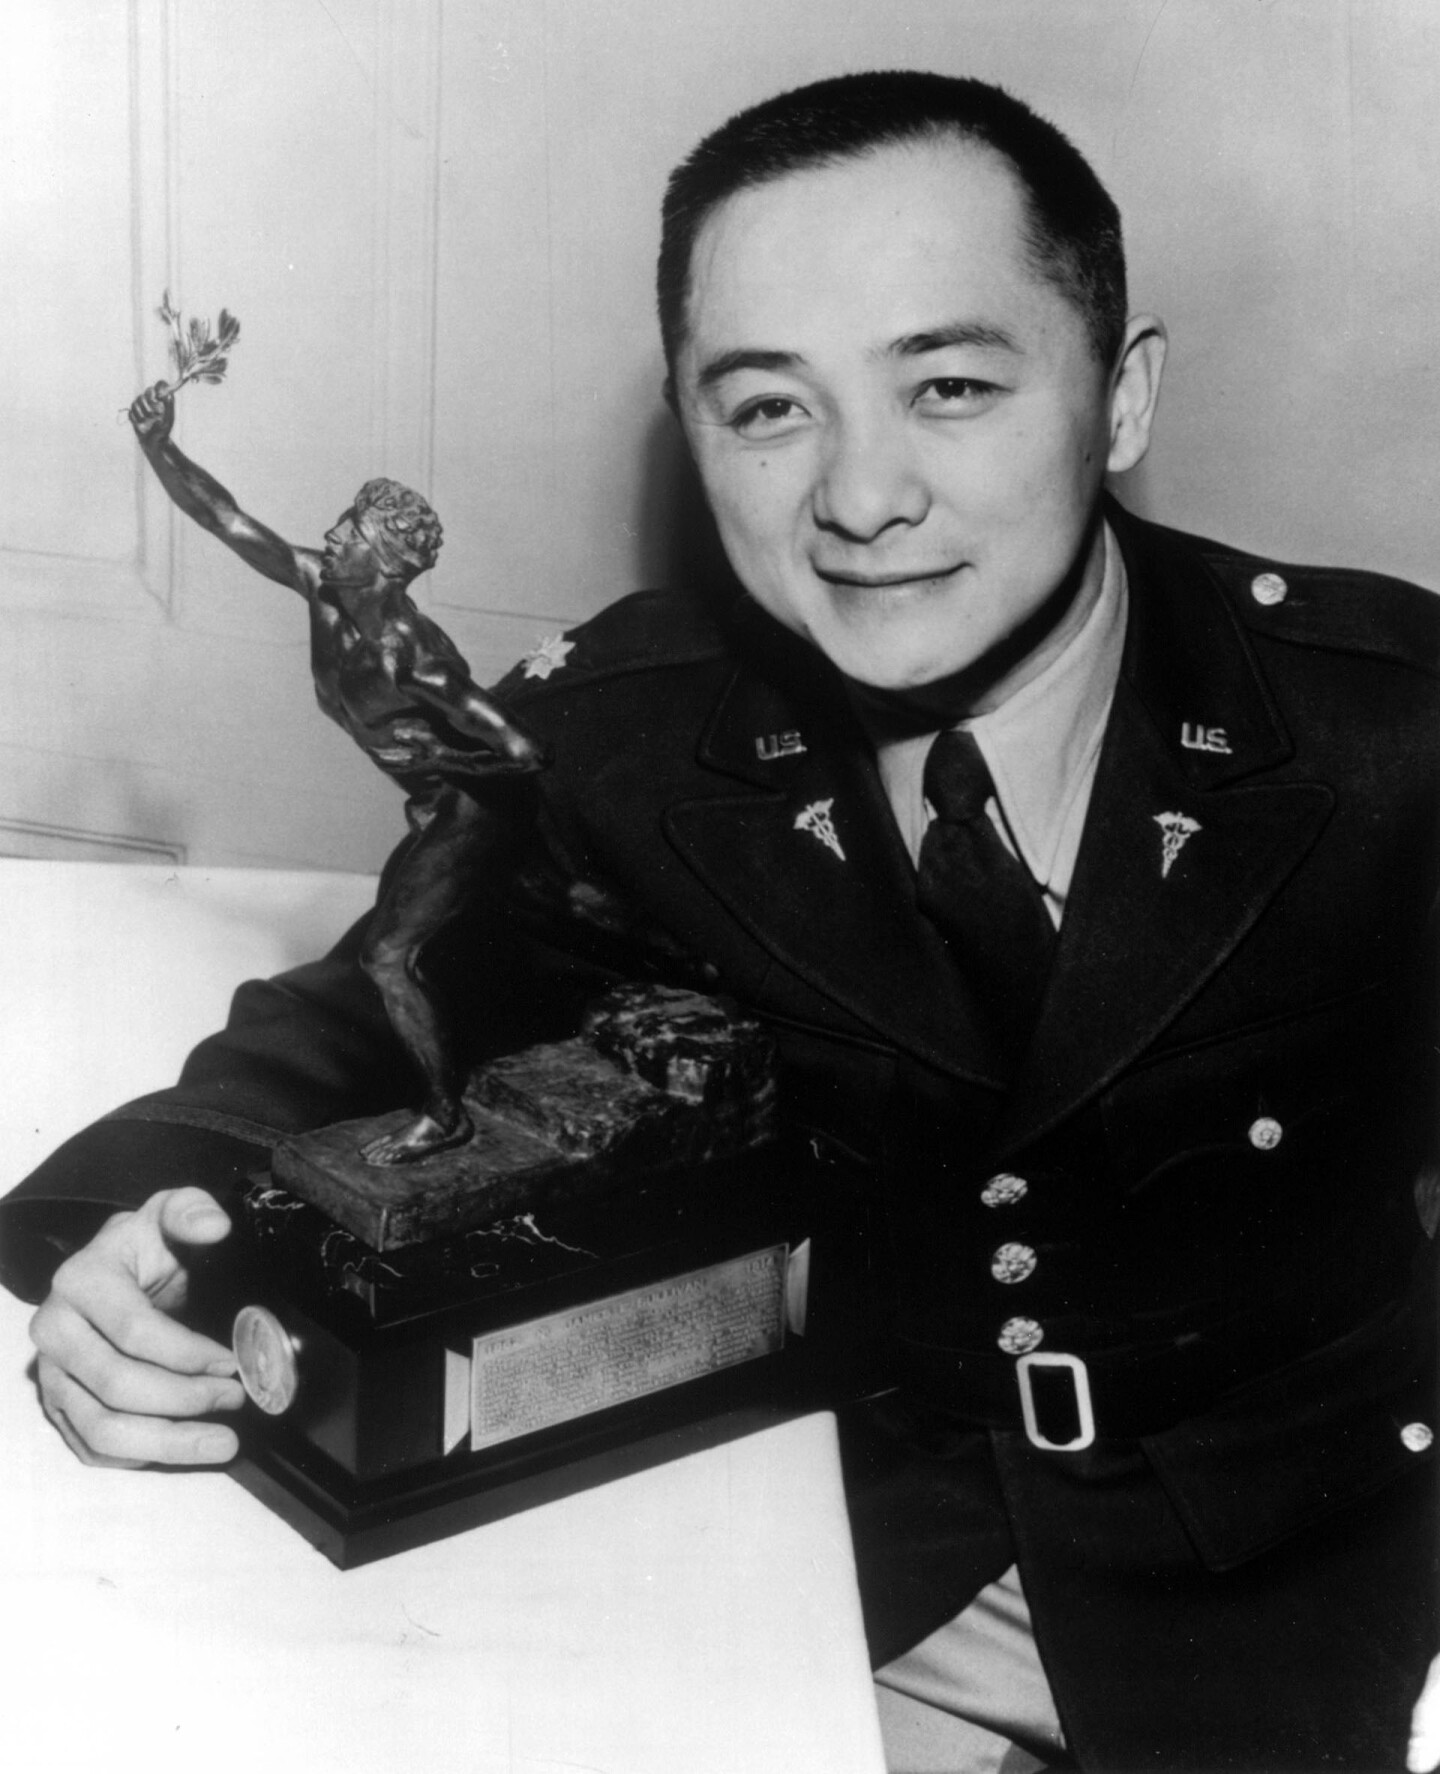 Lee, in his U.S. Army uniform, accepts the 1953 Sullivan Award